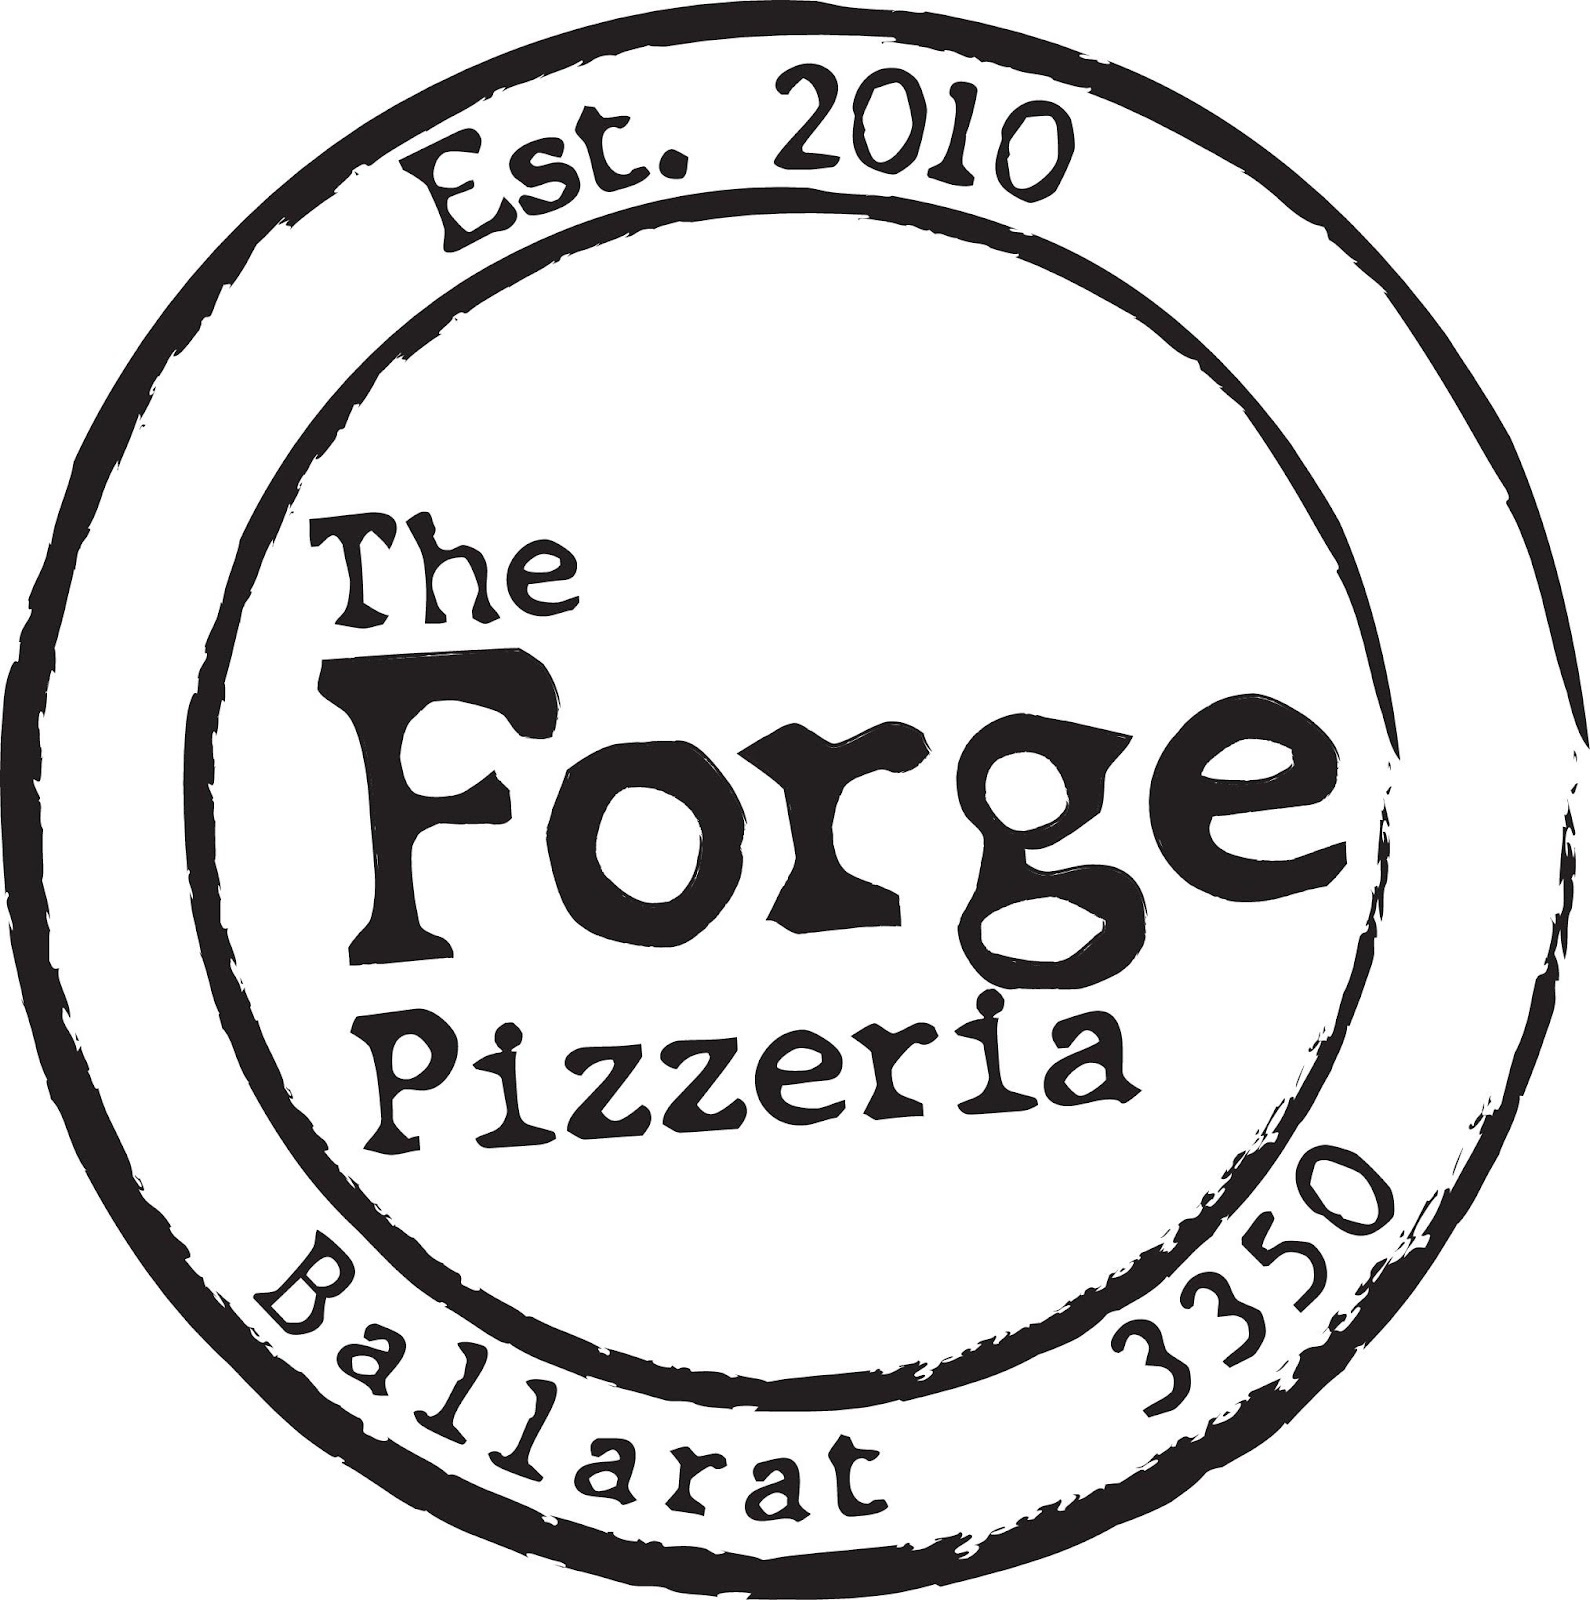 C:\Users\Maureen\Downloads\The Forge Pizzeria - Logo - Print - Copy_rotated.jpg